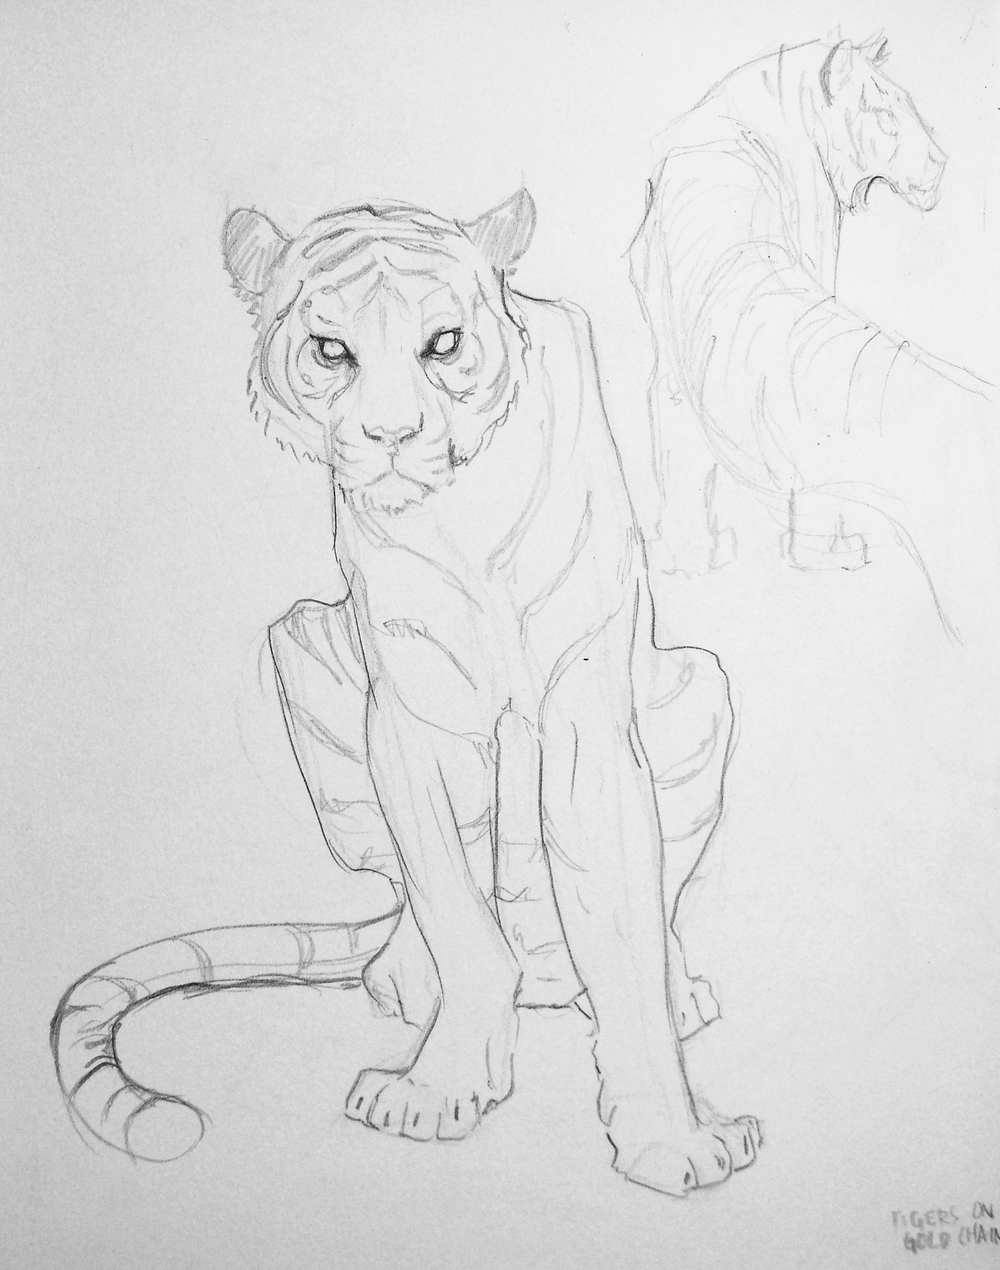 tigersketch.jpg